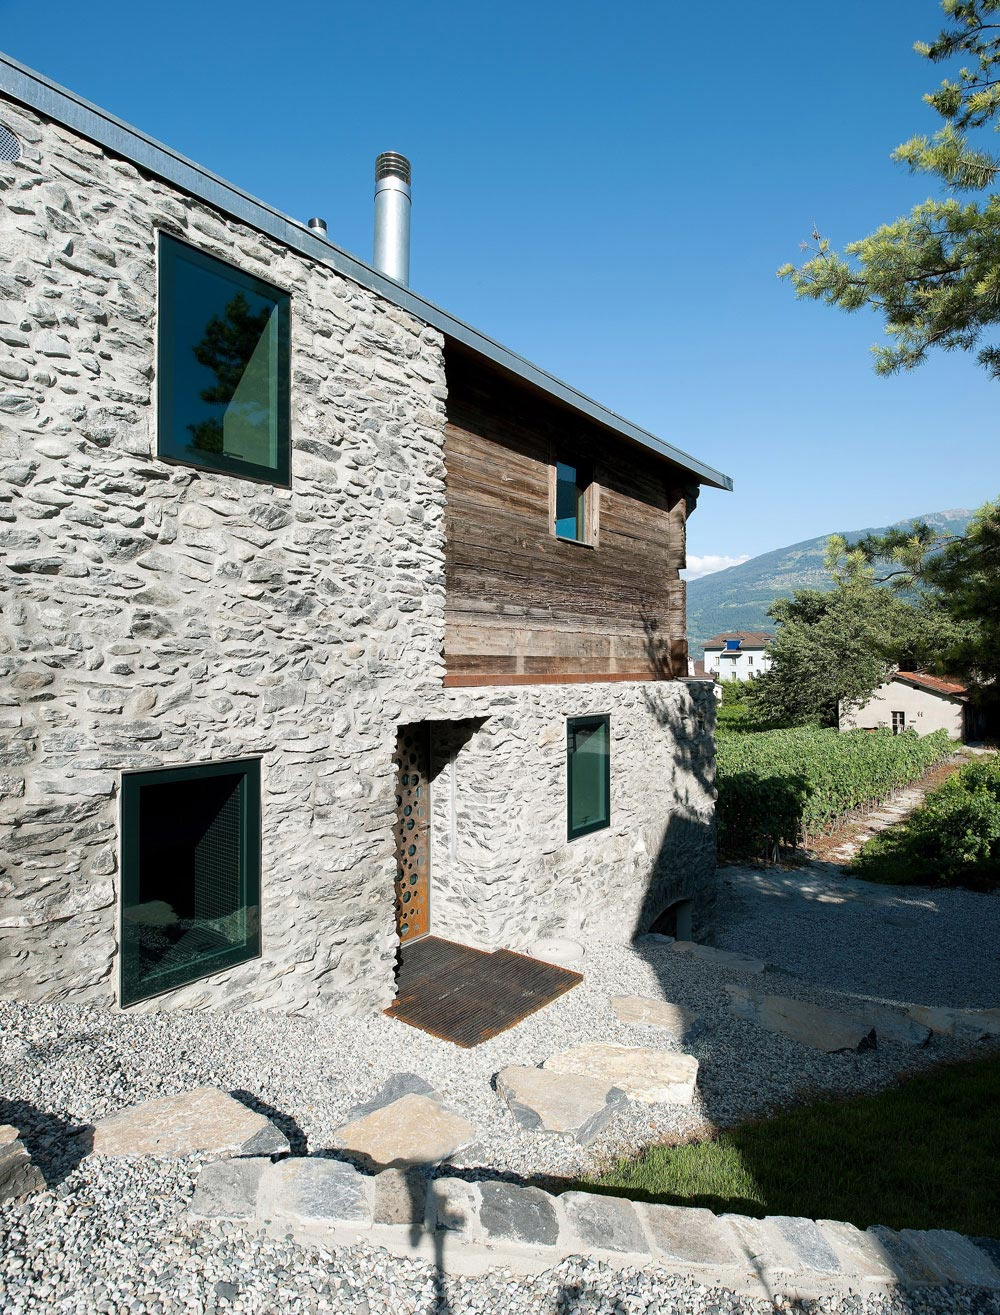 Stone & Wooden Walls, Home Remodel in Vétroz, Switzerland